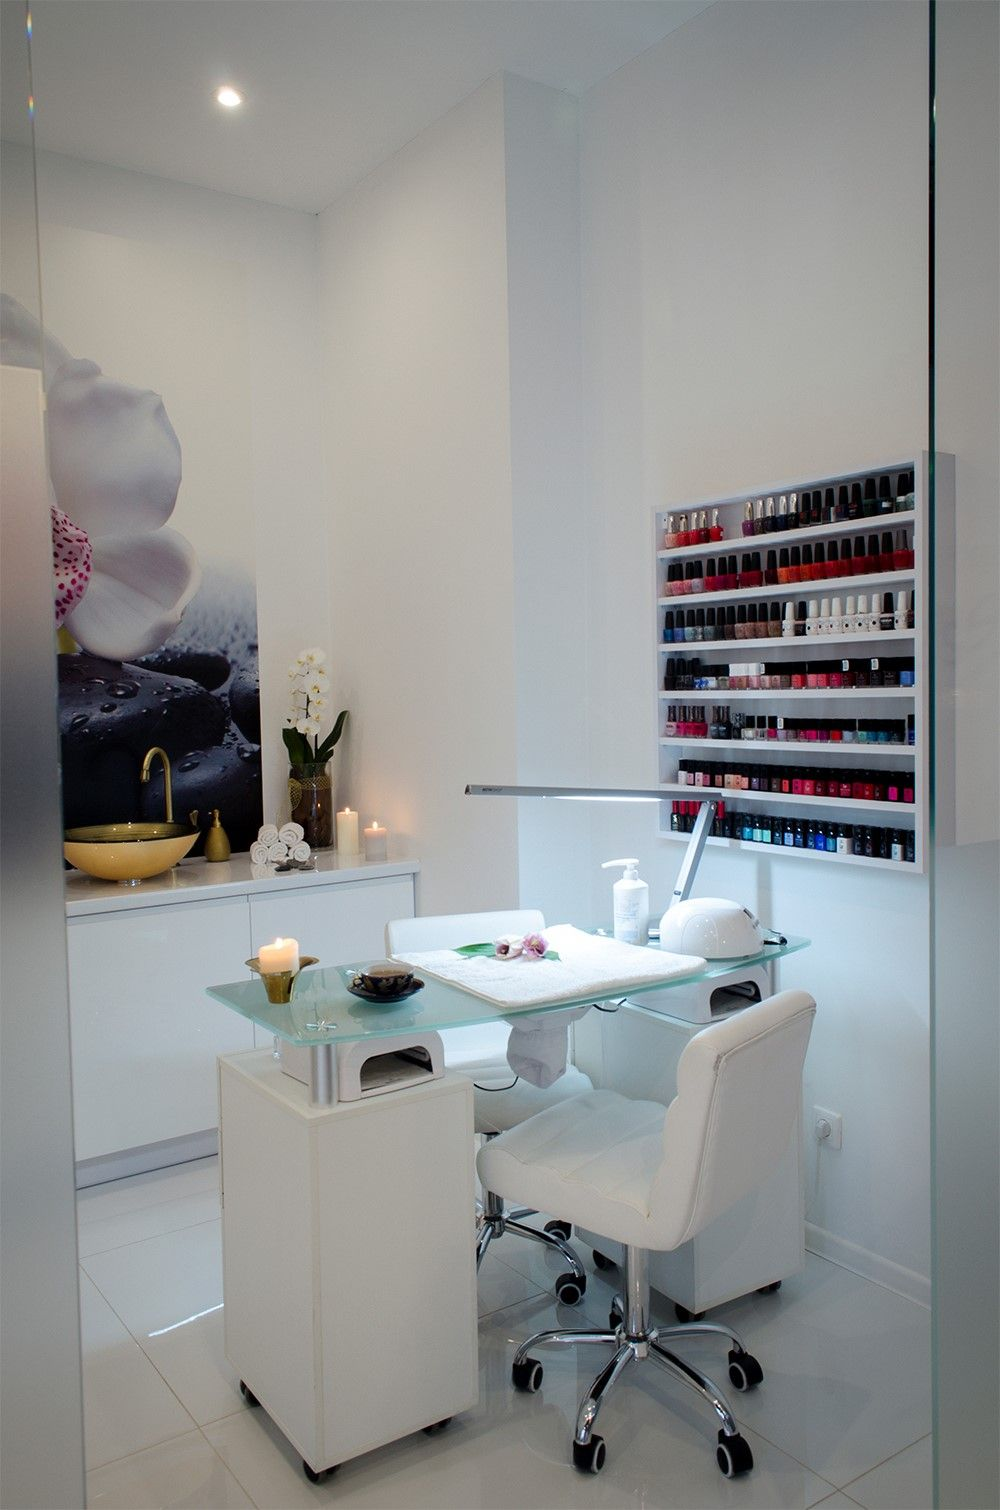 Light under table - salones | Pinterest - Salon, Nagel en Interieurs